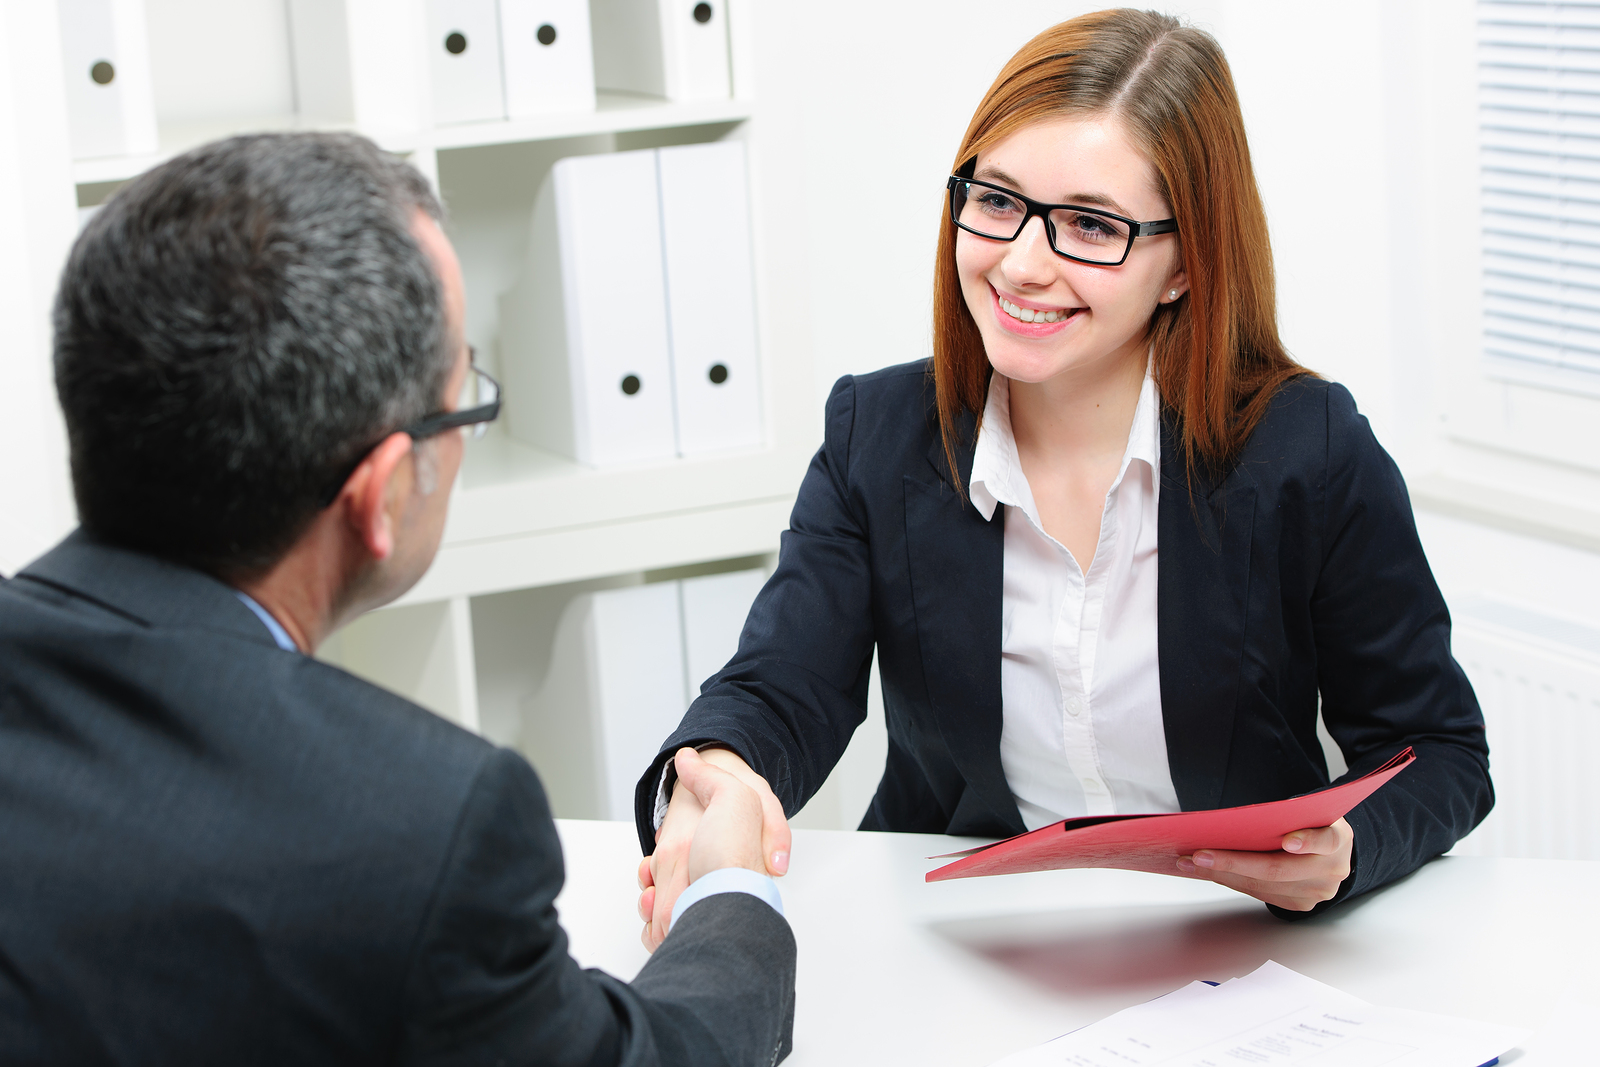 good interview questions to ask potential employees